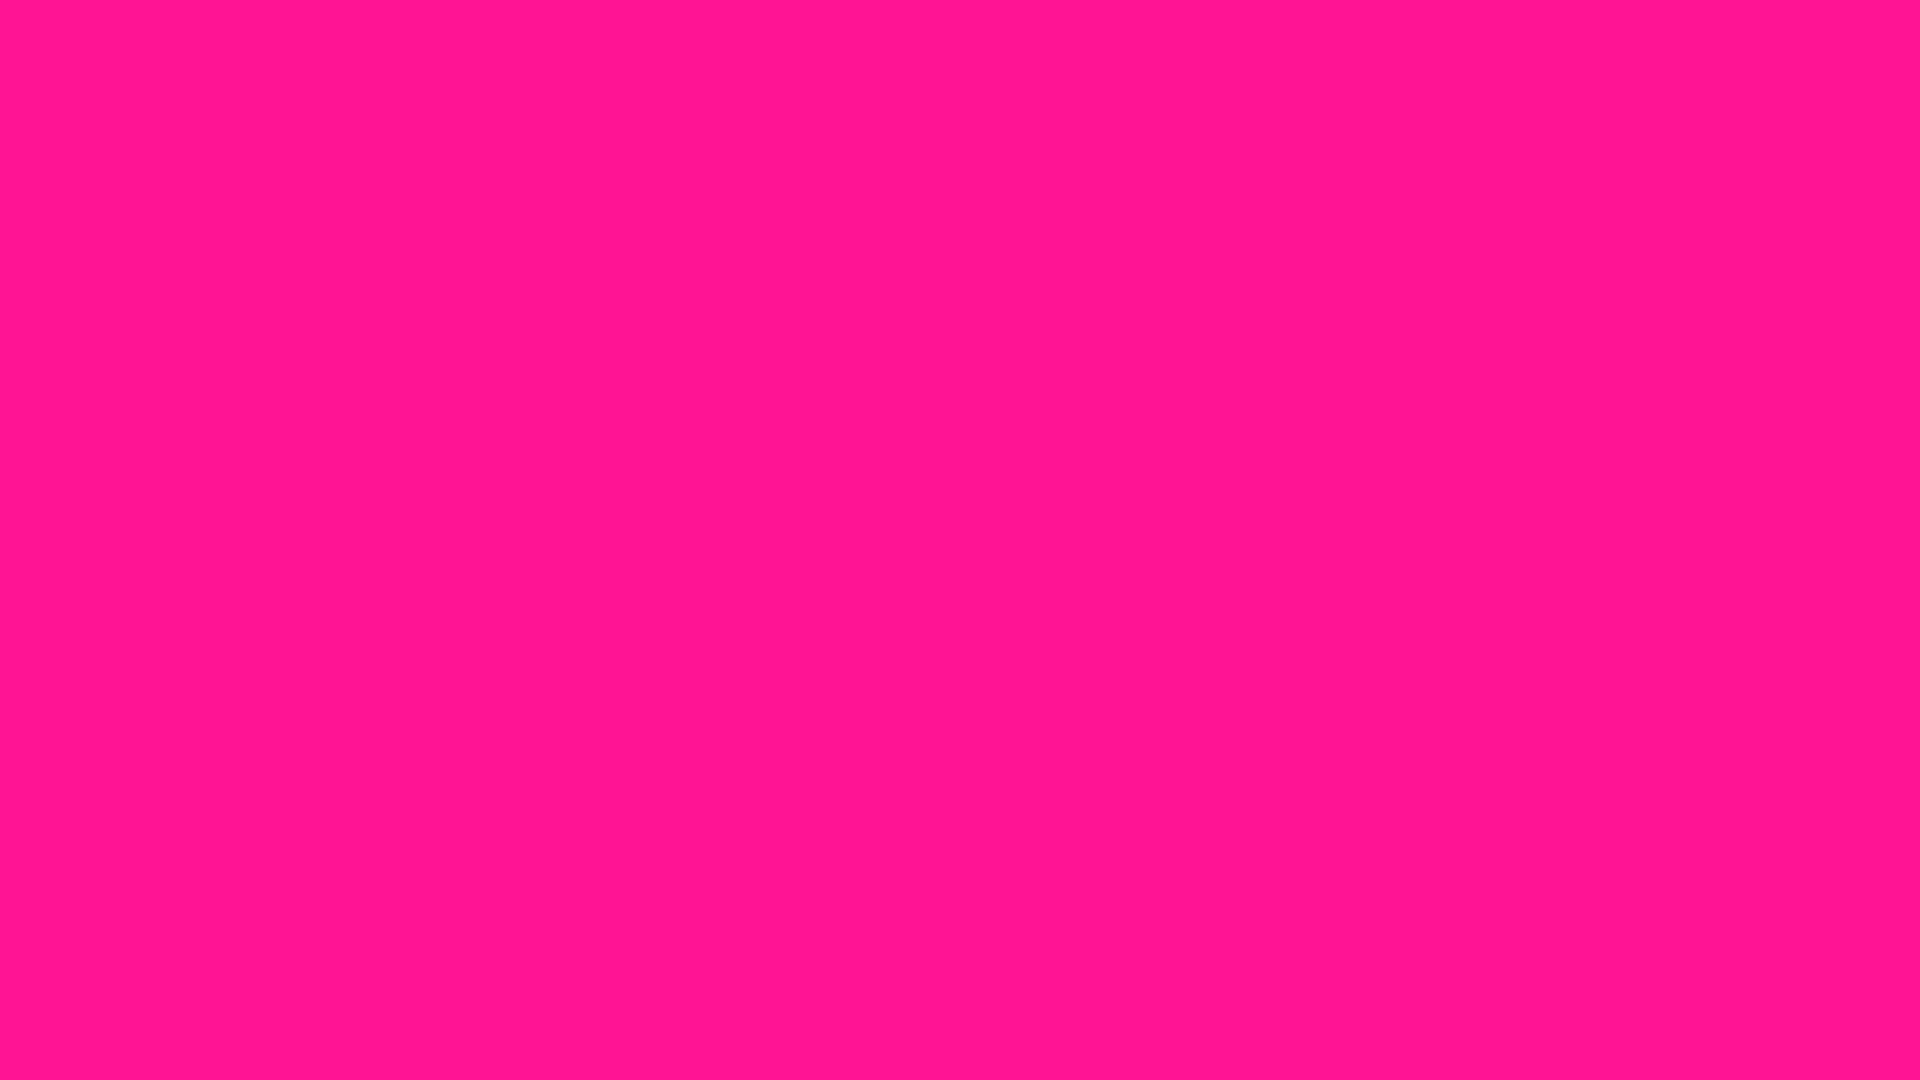 1920x1080 Deep Pink Solid Color Background